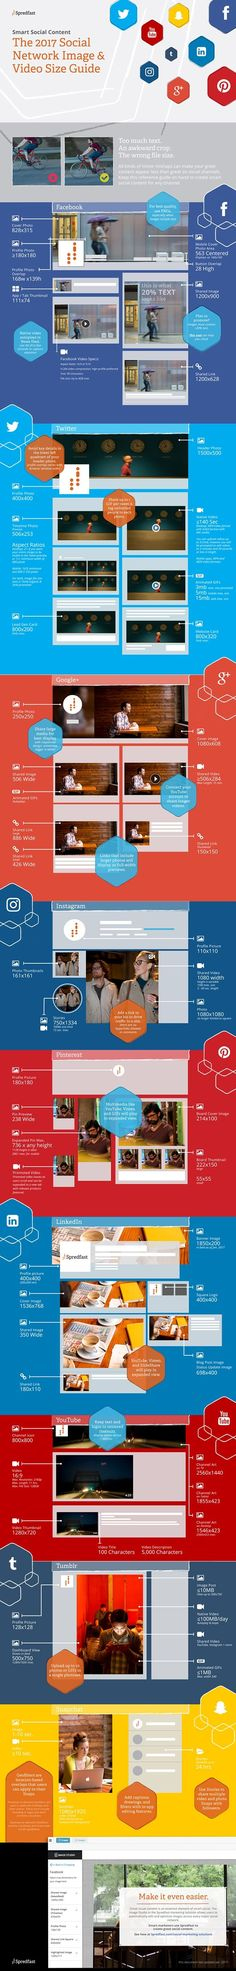 """The Ultimate Cheat Sheet of Photo & Image Sizes on Facebook, Twitter, LinkedIn & Other Social Networks [Infographic] (By @HubSpot)"""